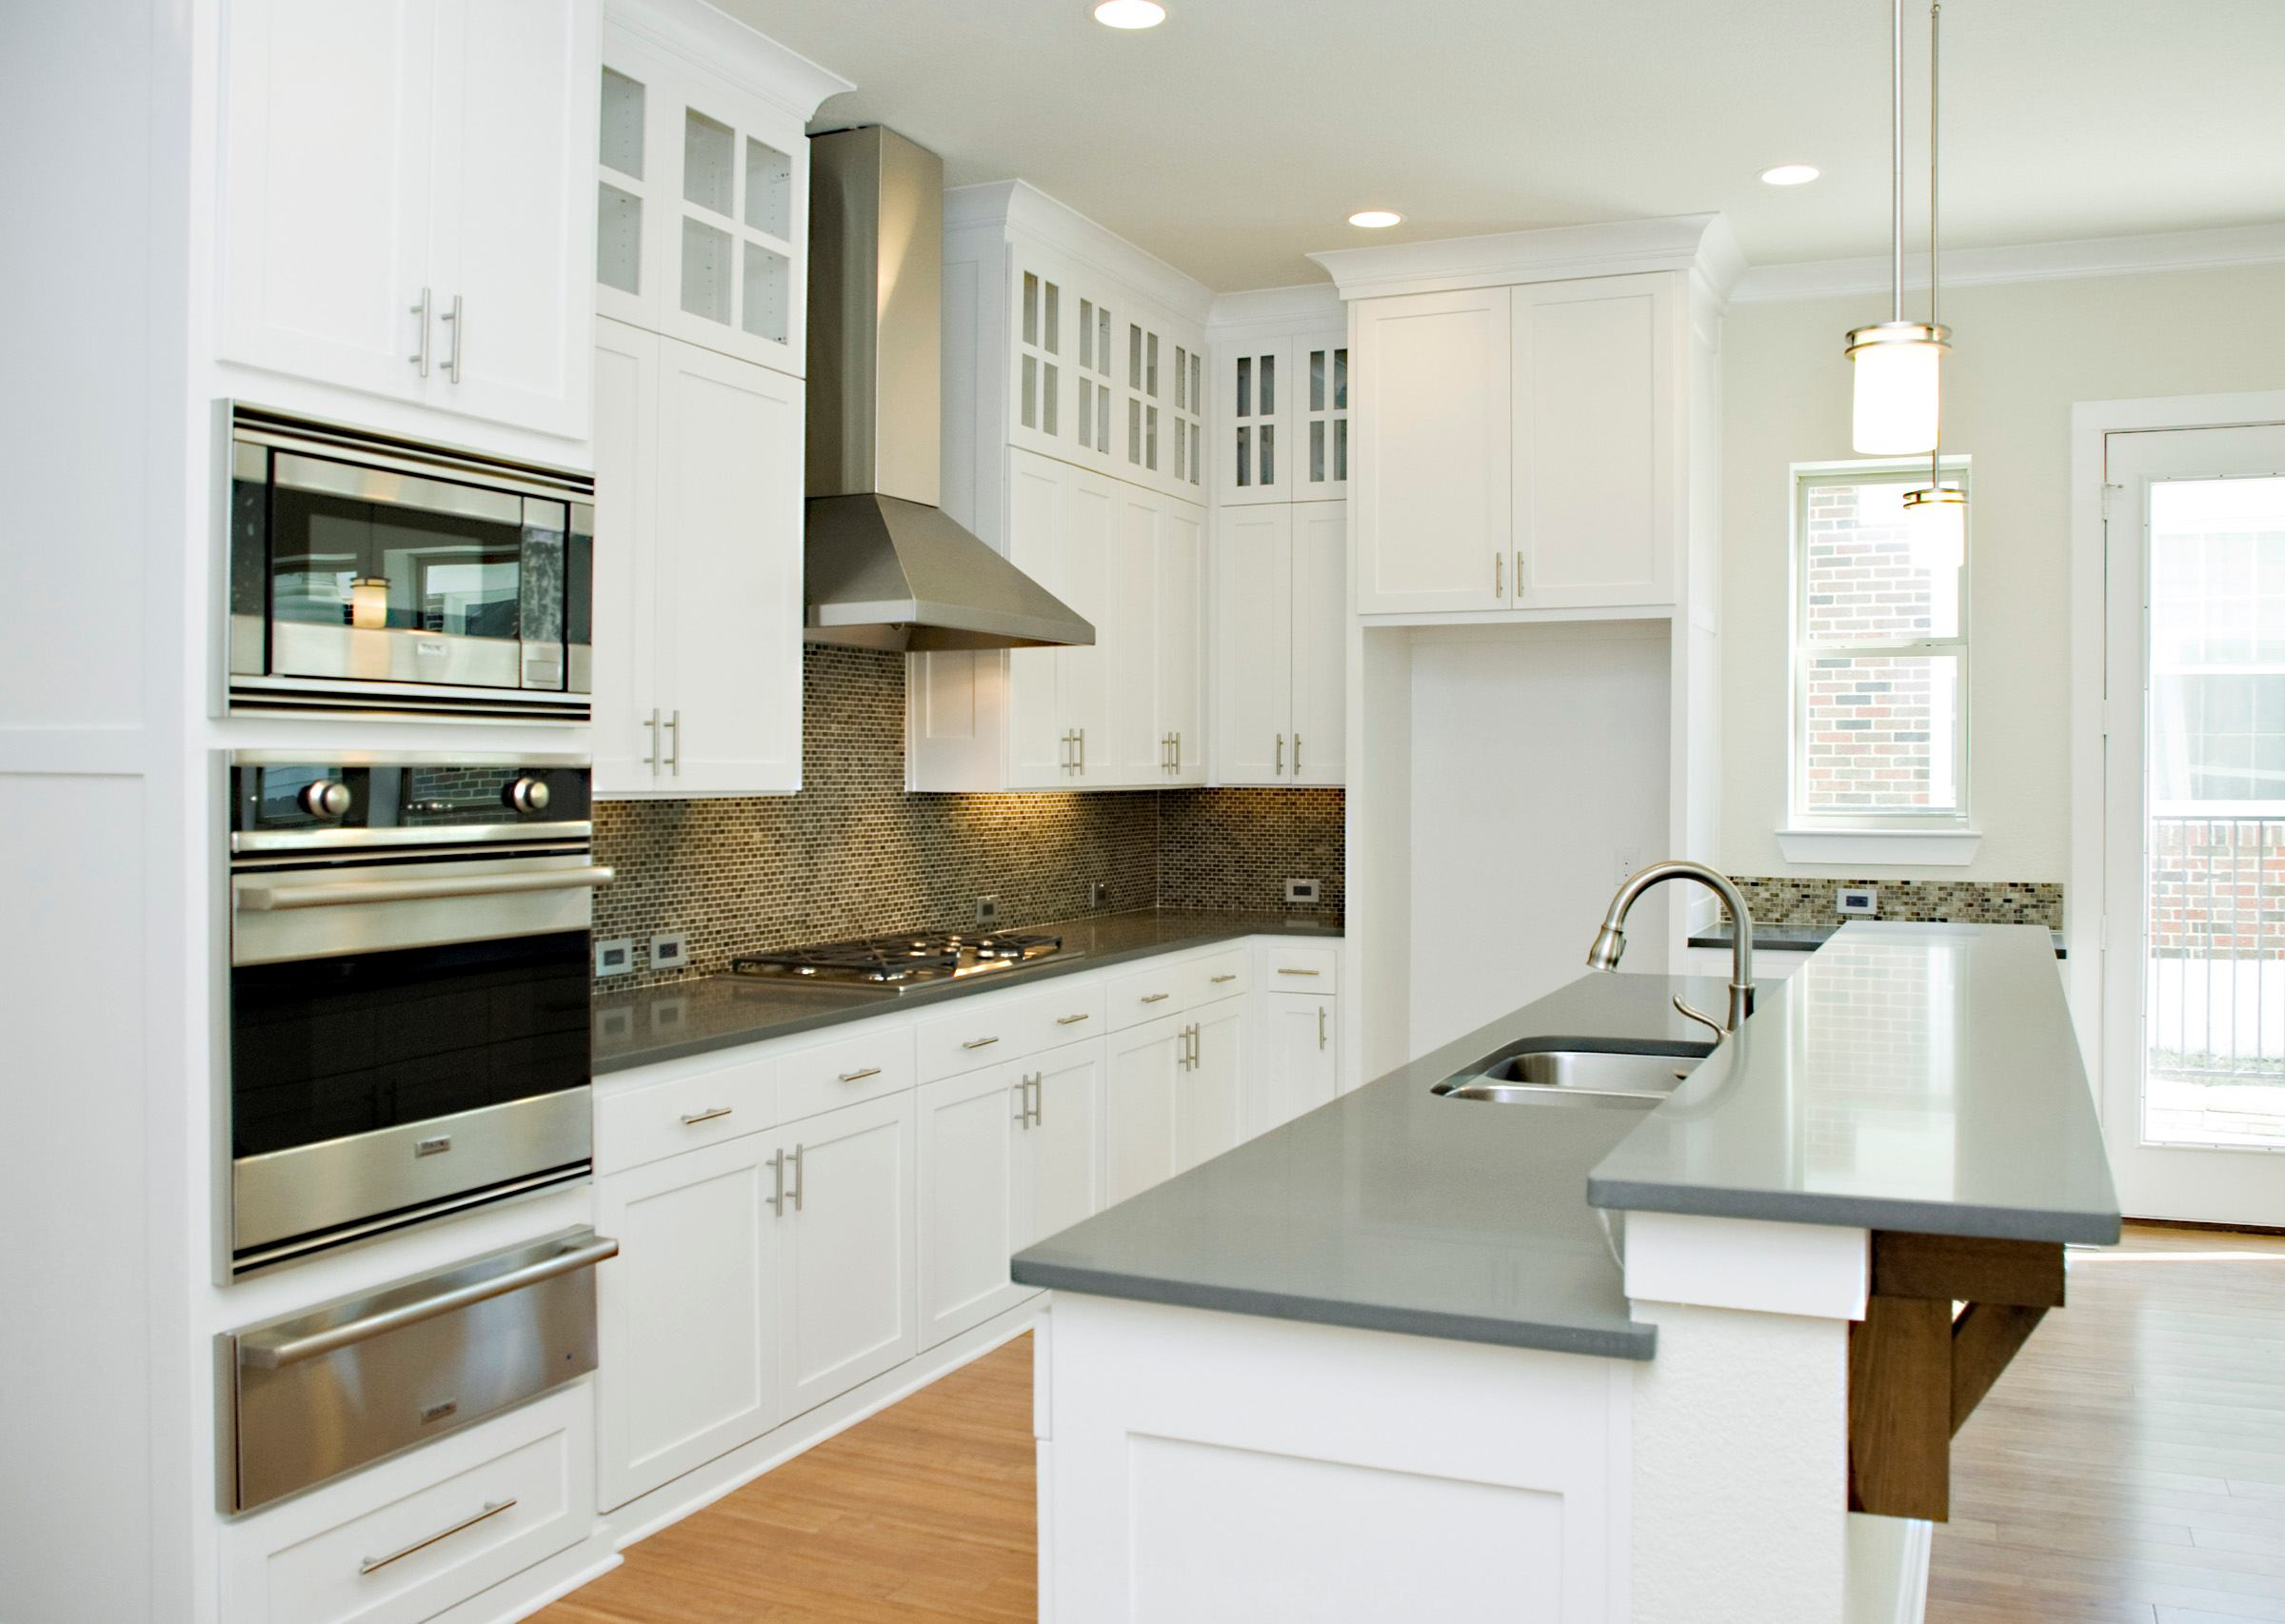 NKBA Survey Reveals What Design Choices Are Trending in Kitchen and ...